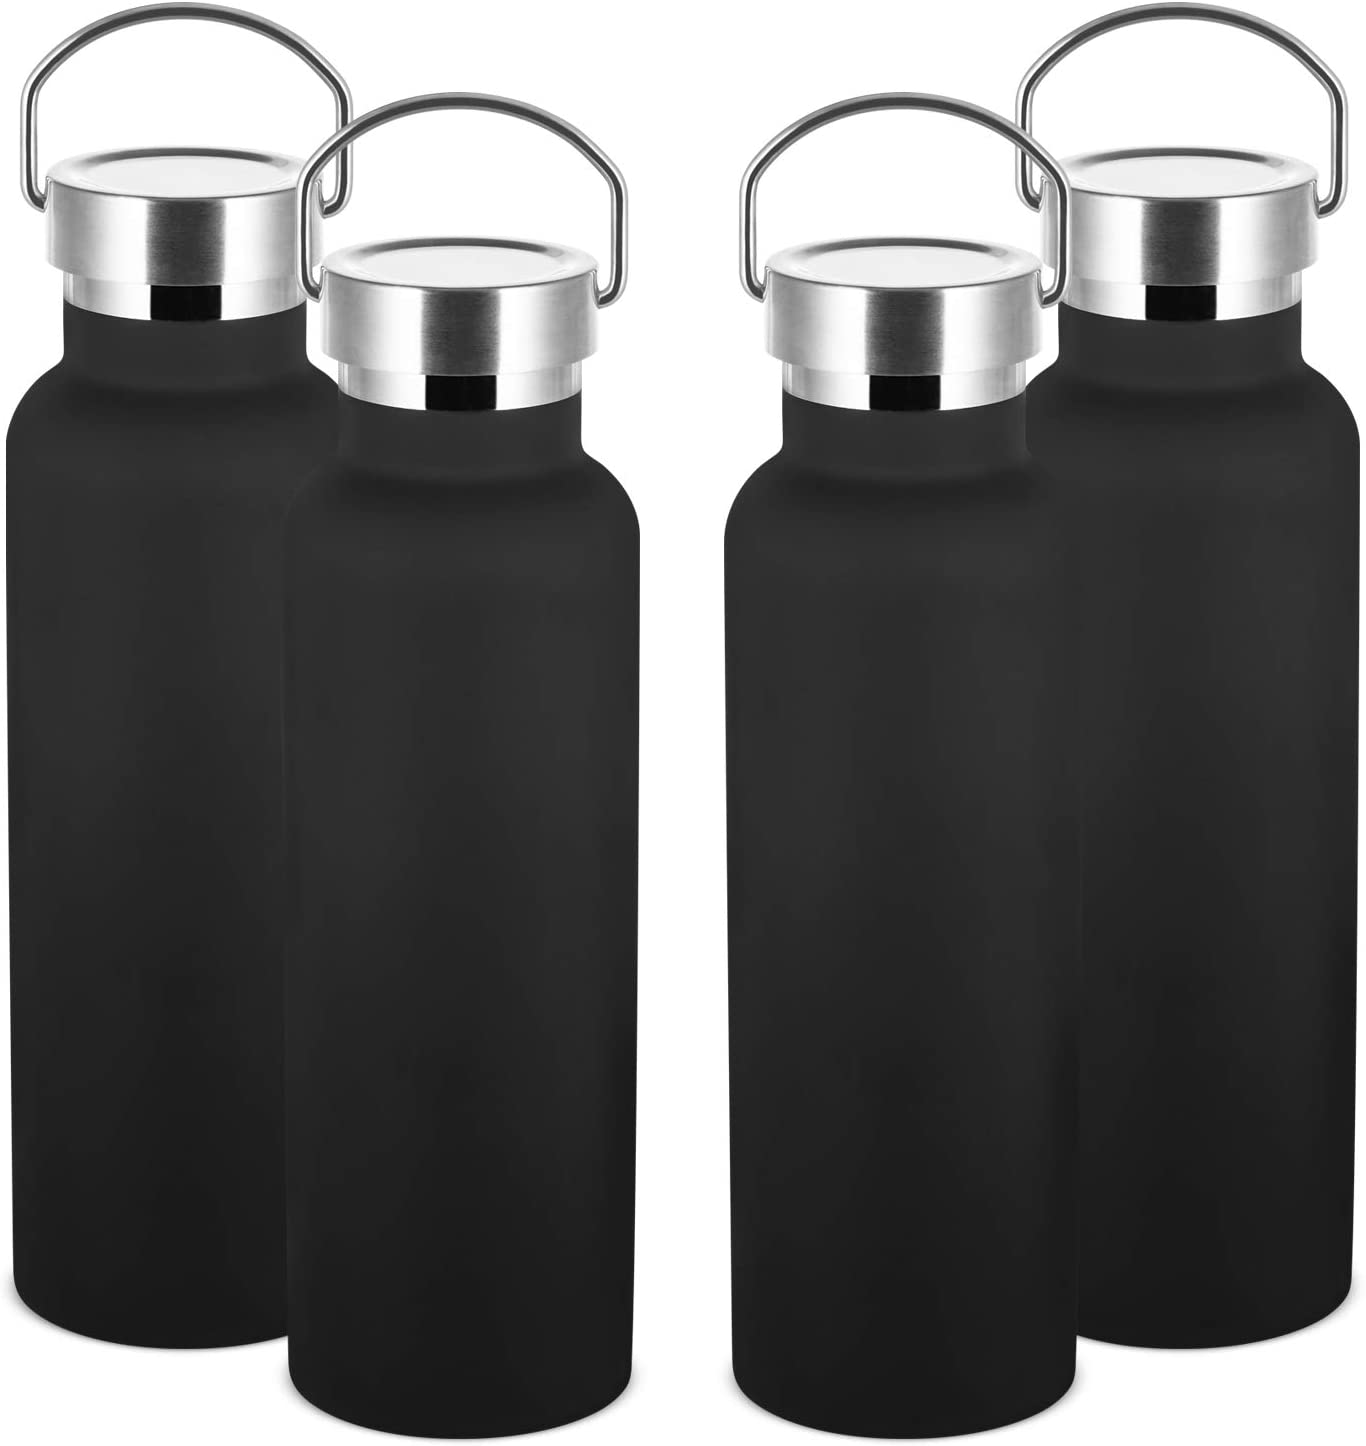 MEWAY 20oz Stainless Steel Sports Water Clearance Arlington Mall SALE Limited time 4 Bottle Bulks Pack Doub